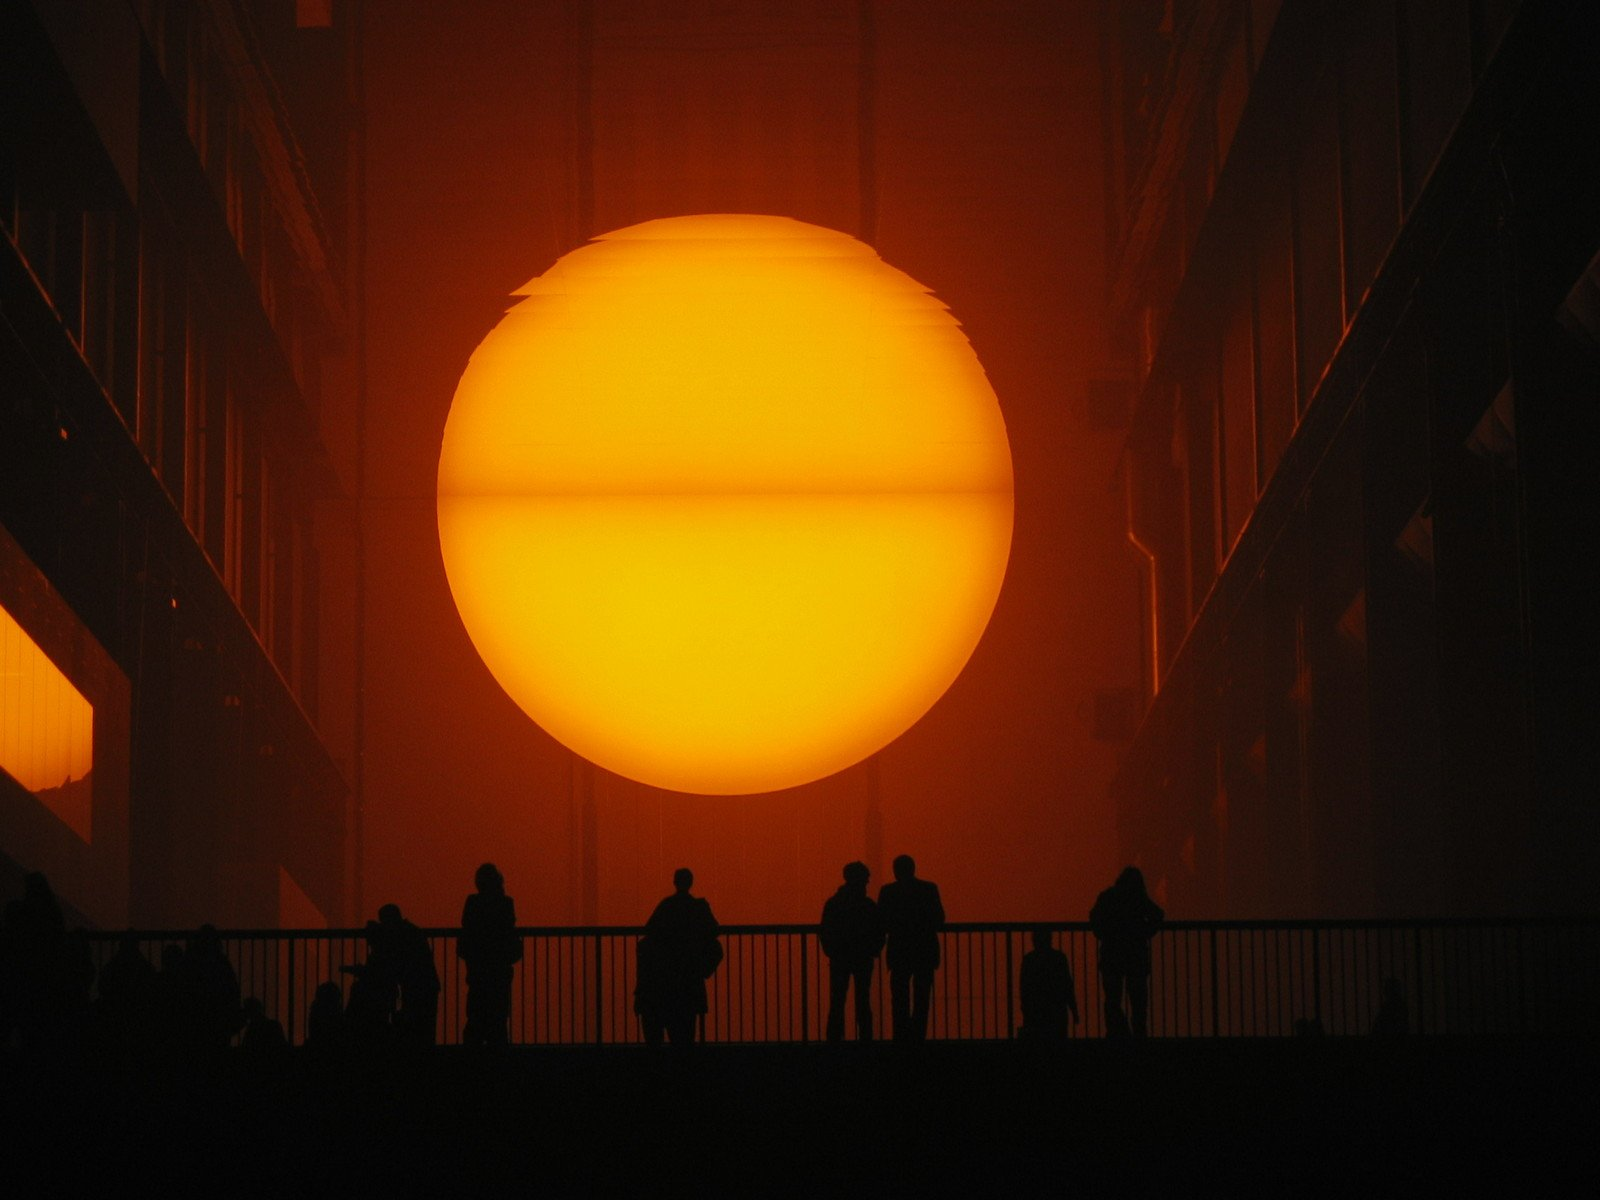 weather project The weather project by olafur eliasson on curiator, the world's biggest  collaborative art collection.